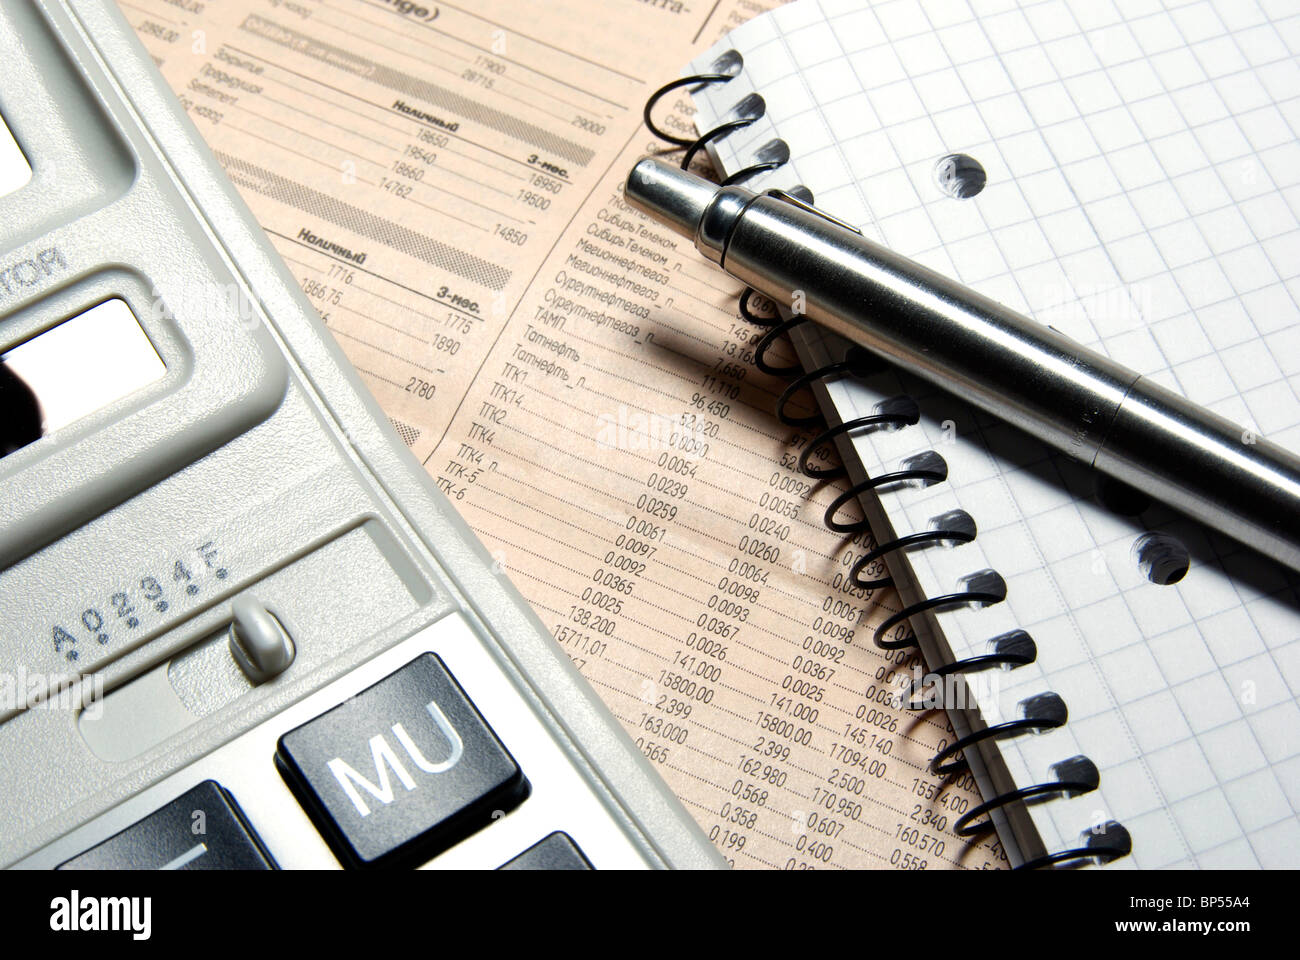 Financial calculator, steel pen and notebook laying on newspaper. Concept. Stock Photo